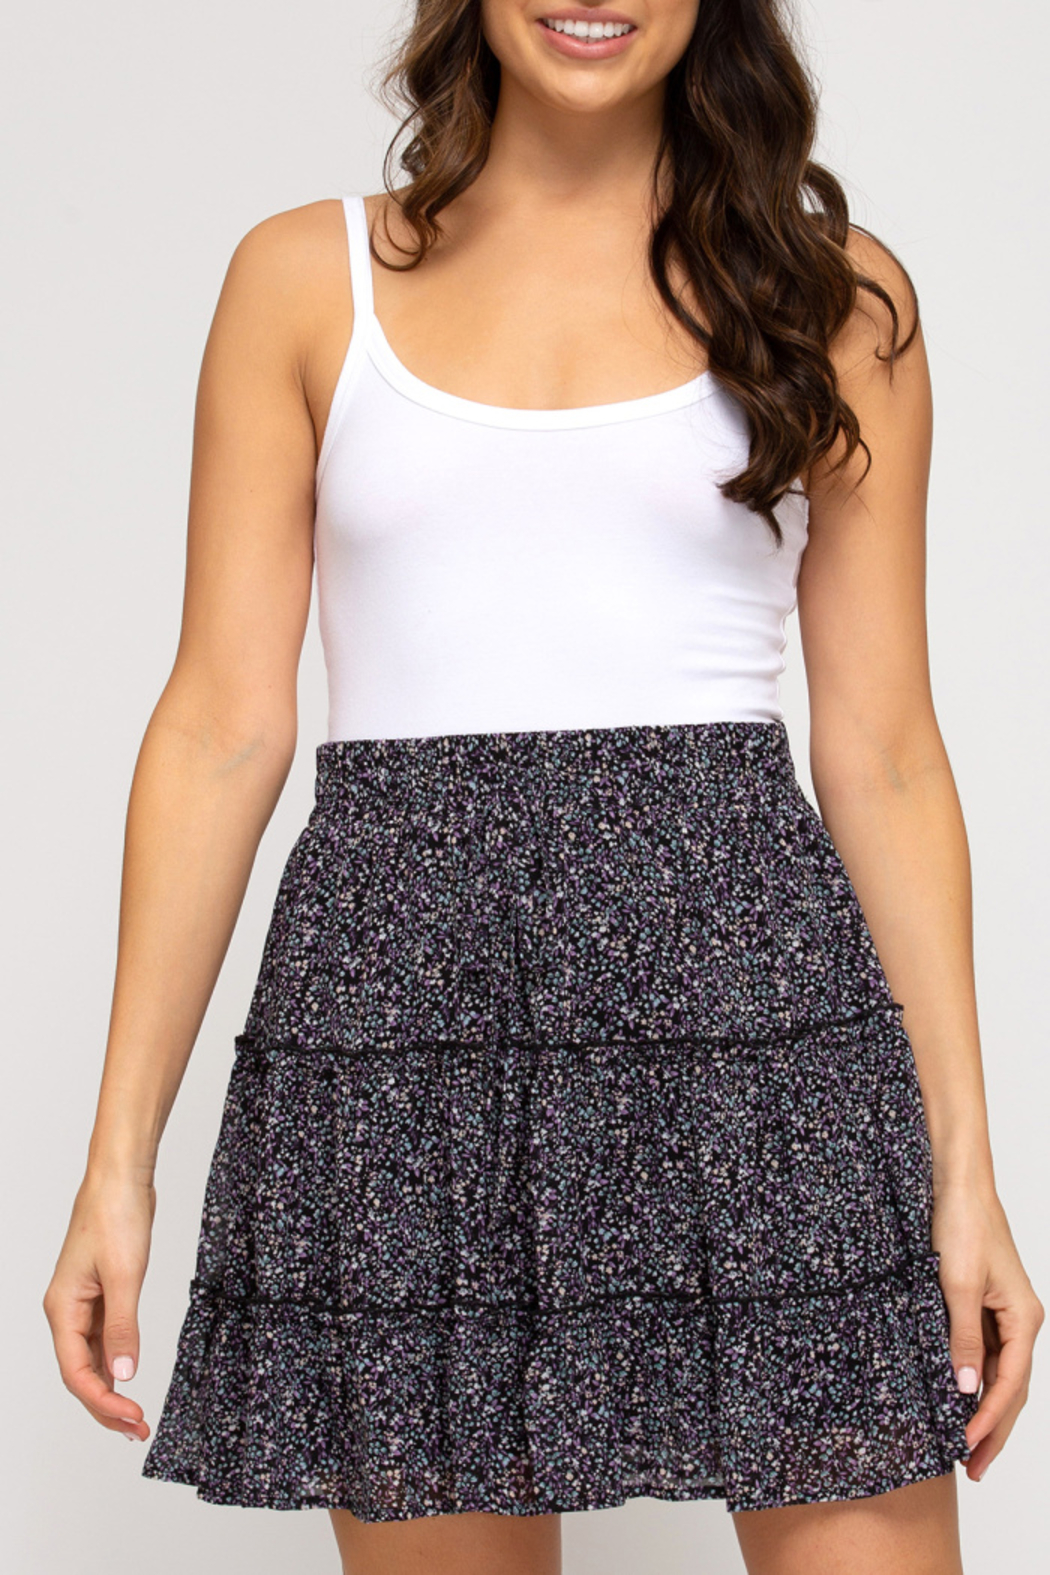 She & Sky  In Bloom Tiered Skirt - Main Image